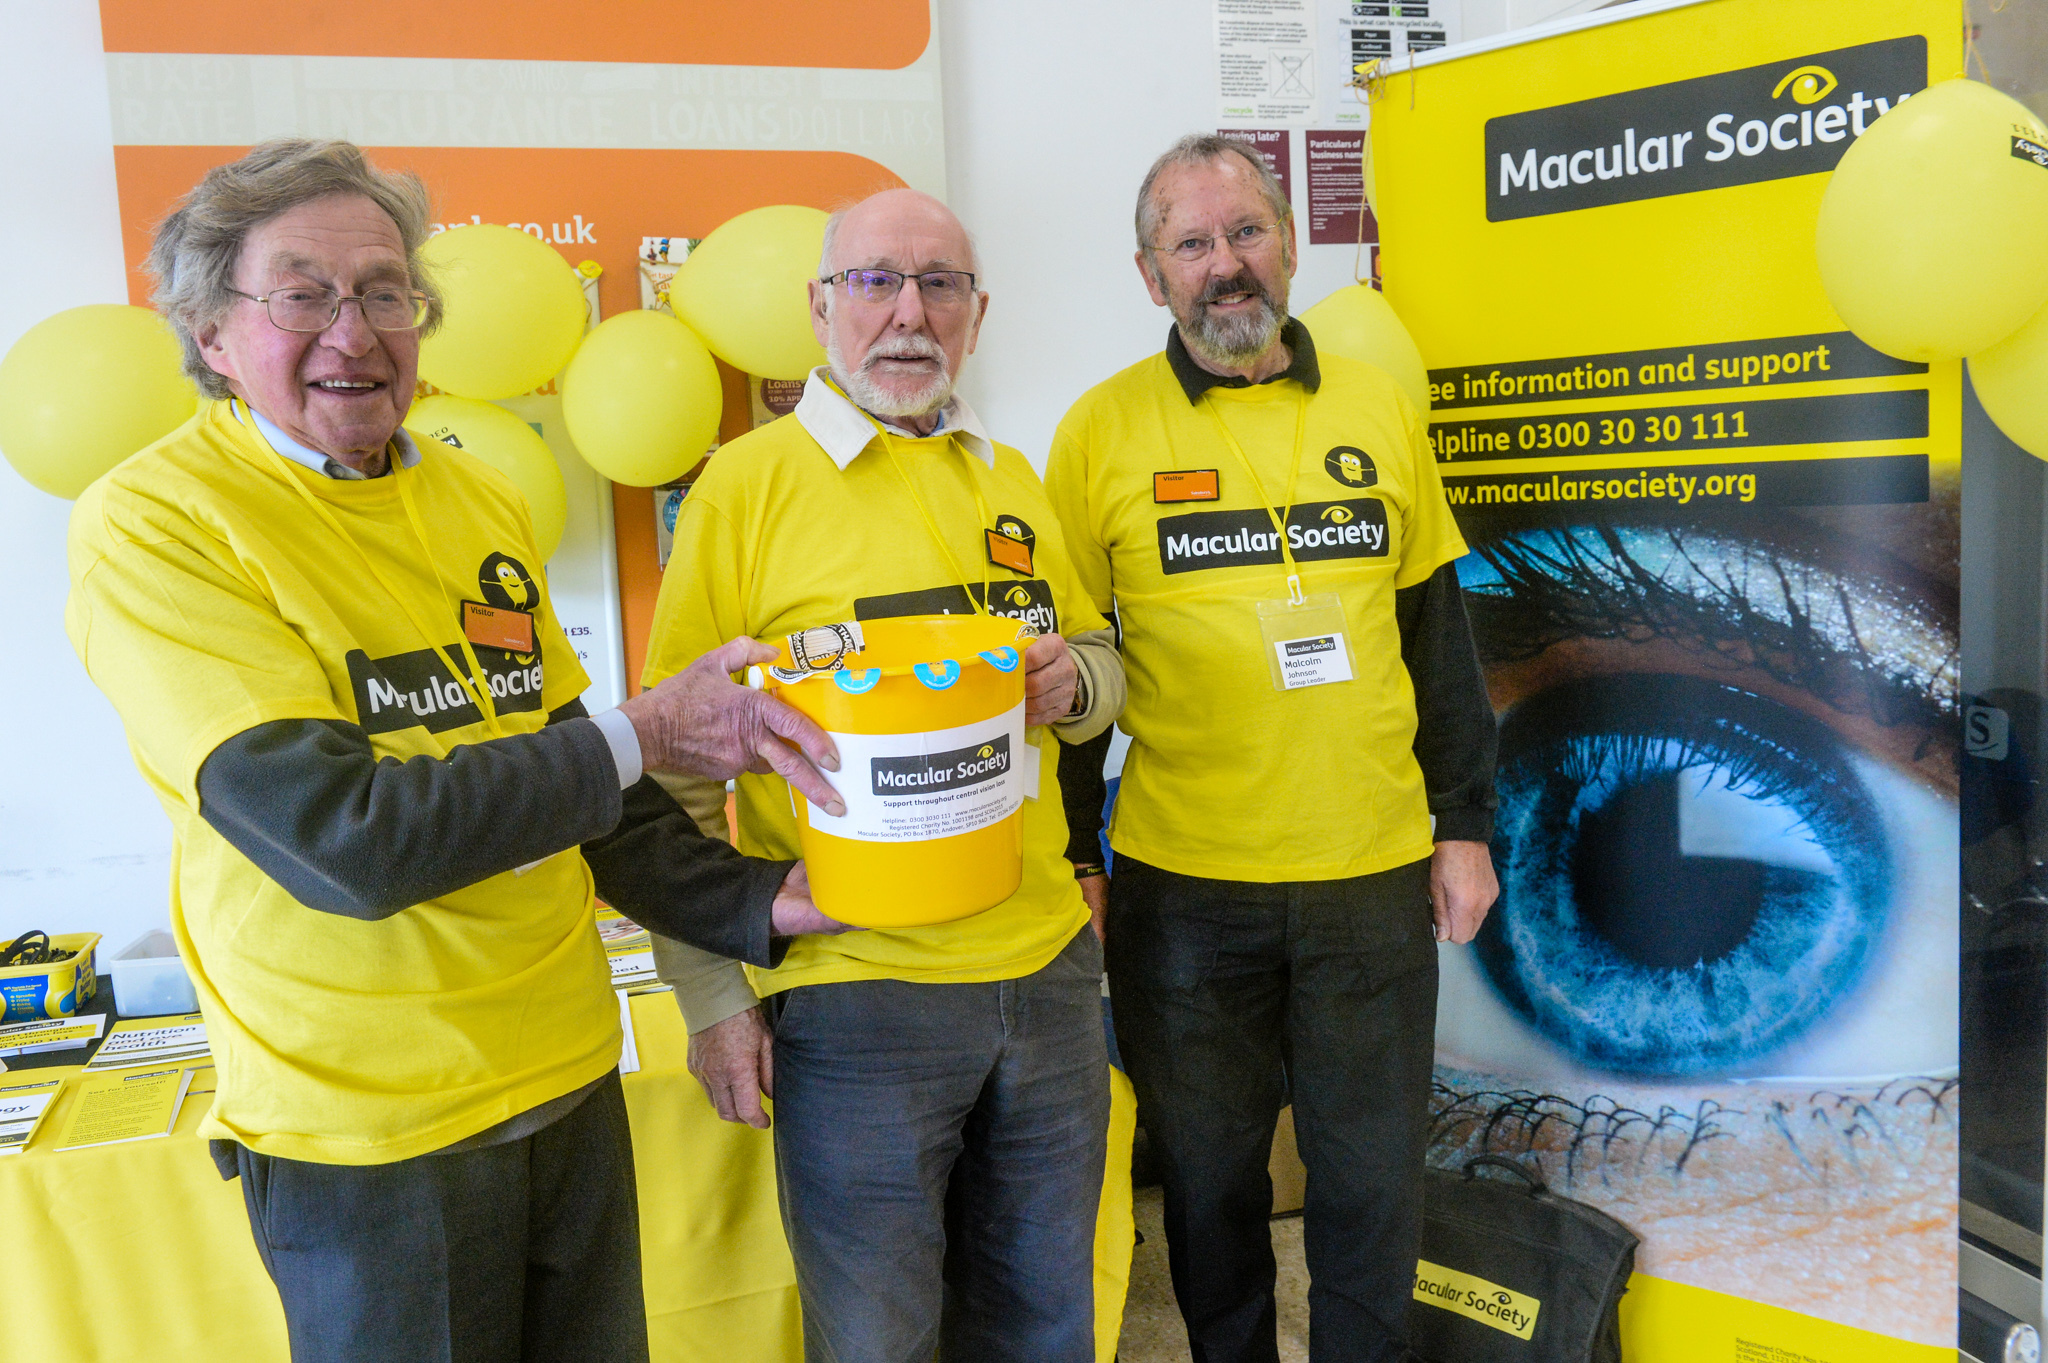 Pictured are Neil Tudr Llewellyn Rogers and Malcolm Johnson at the Macular Society Stall at Sainsburys in Oswestry. ME 071017